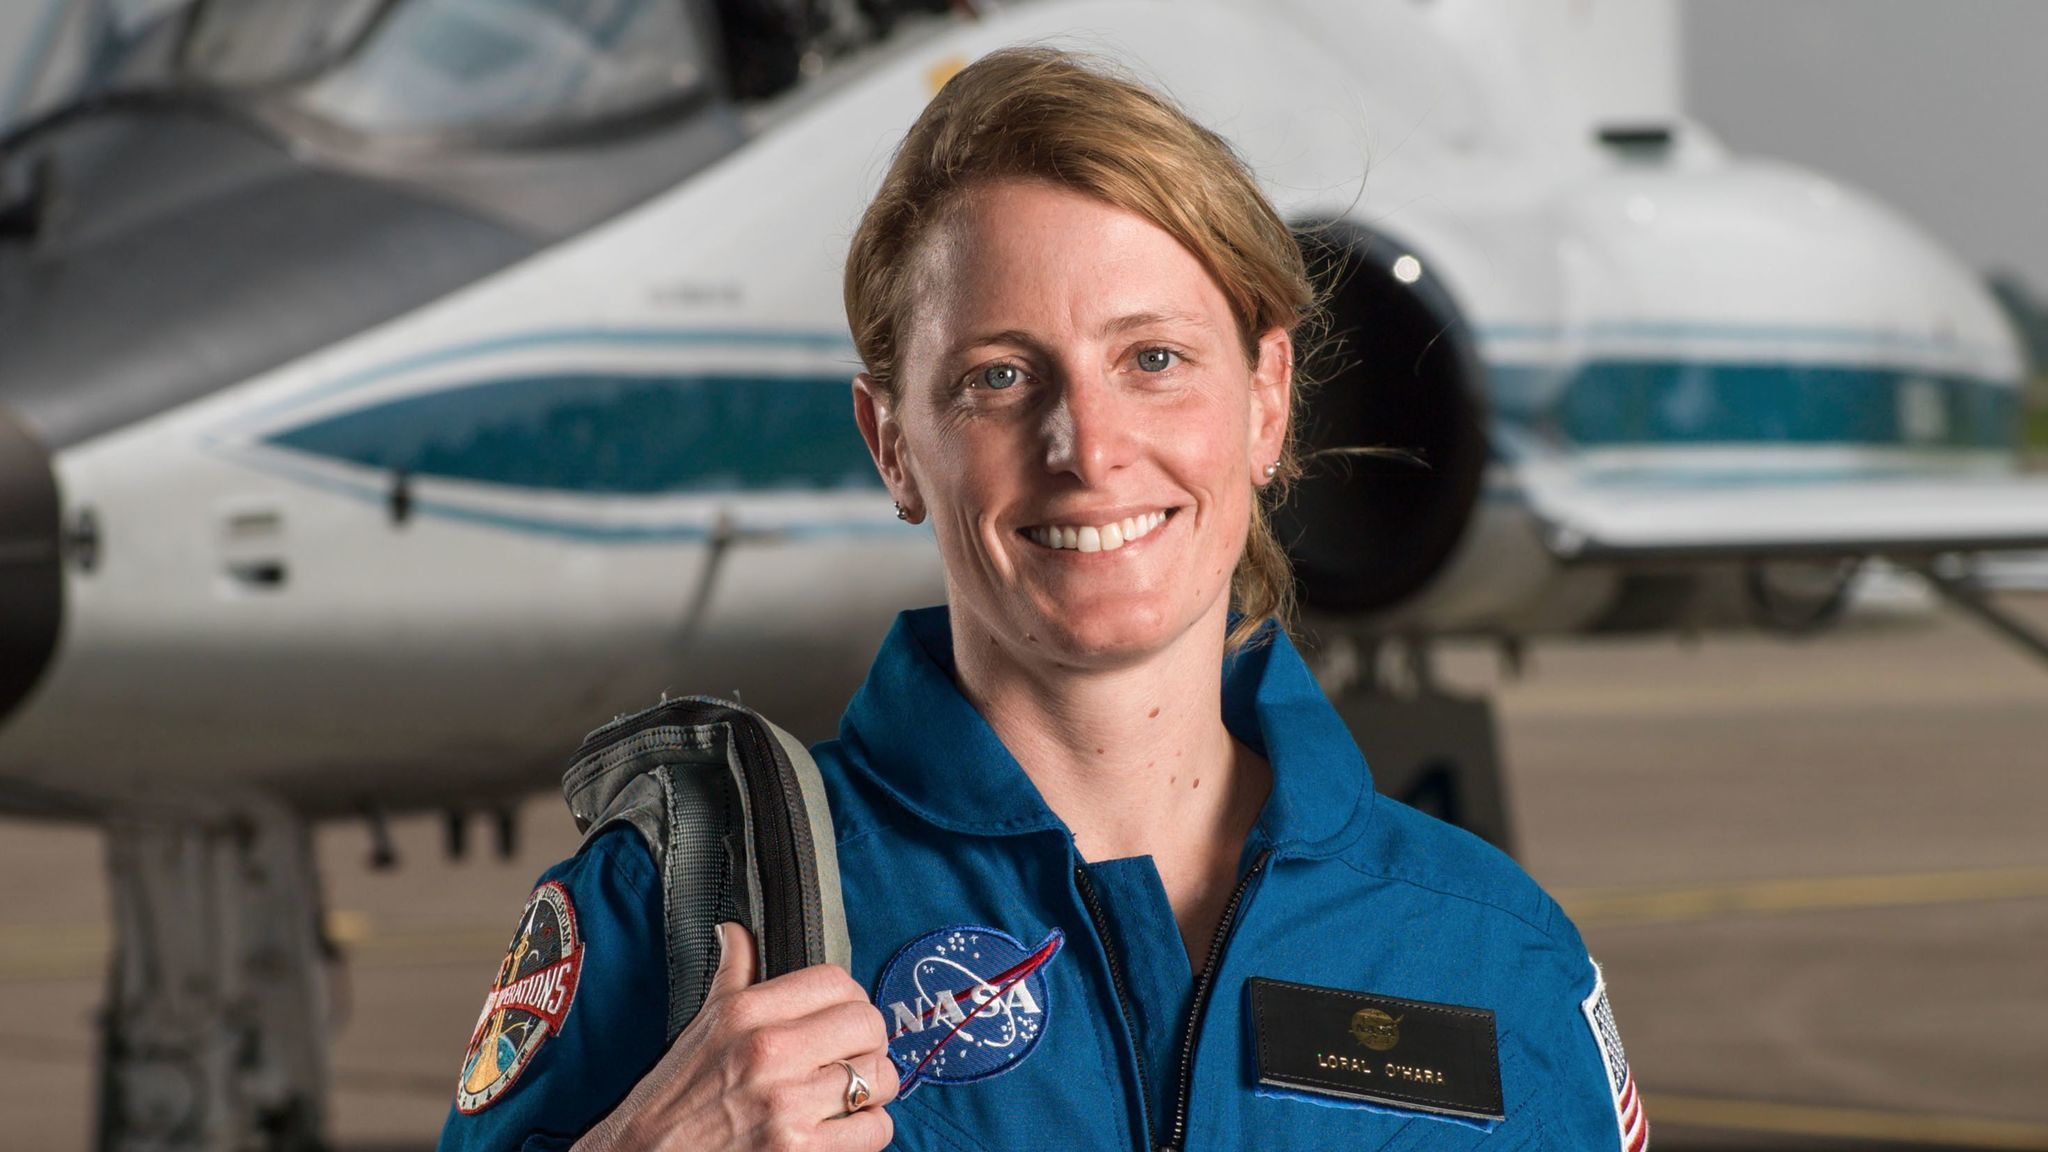 Astronaut Candidate Loral O'Hara